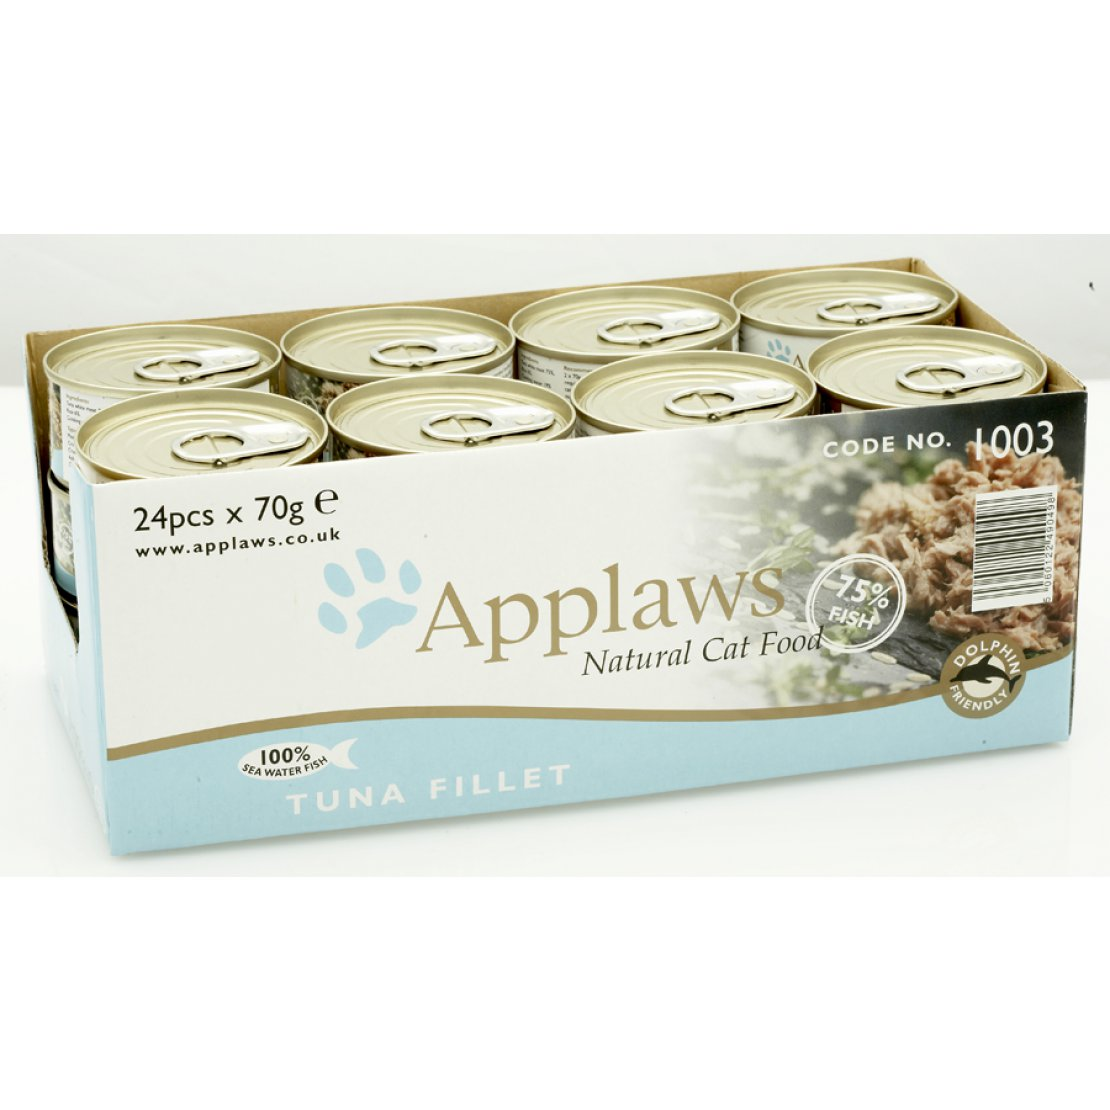 ONLY AVAILABLE FOR LOCAL DELIVERY. Applaws Cat Food Can. Tuna Fillet. Small